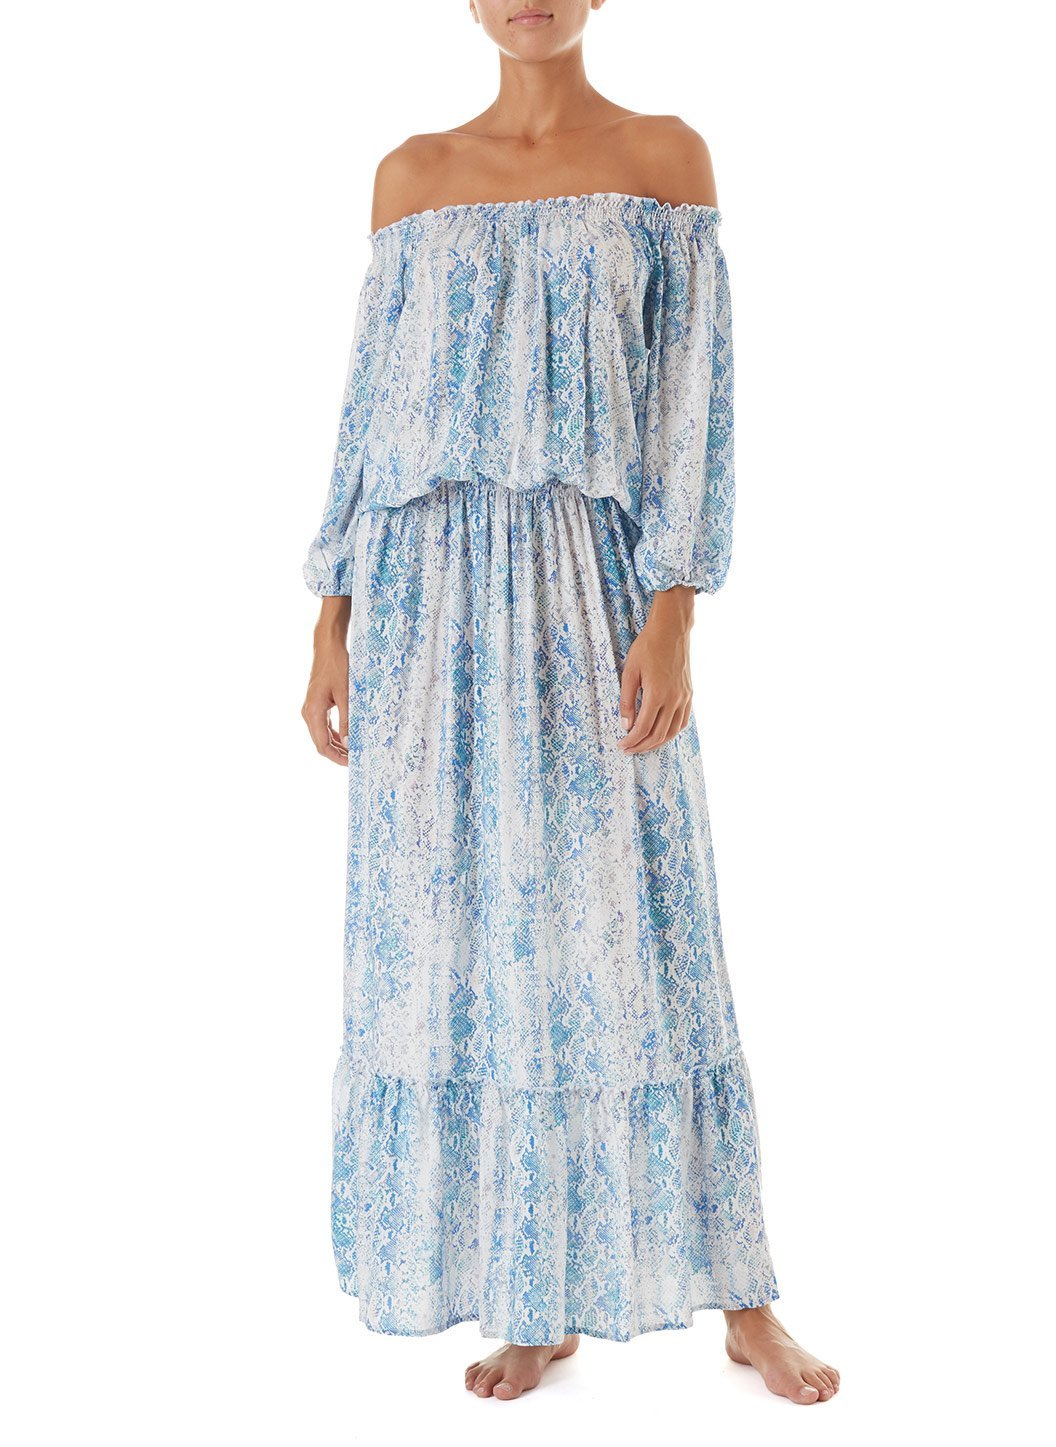 faith serpente offtheshoulder maxi dress 2019 F